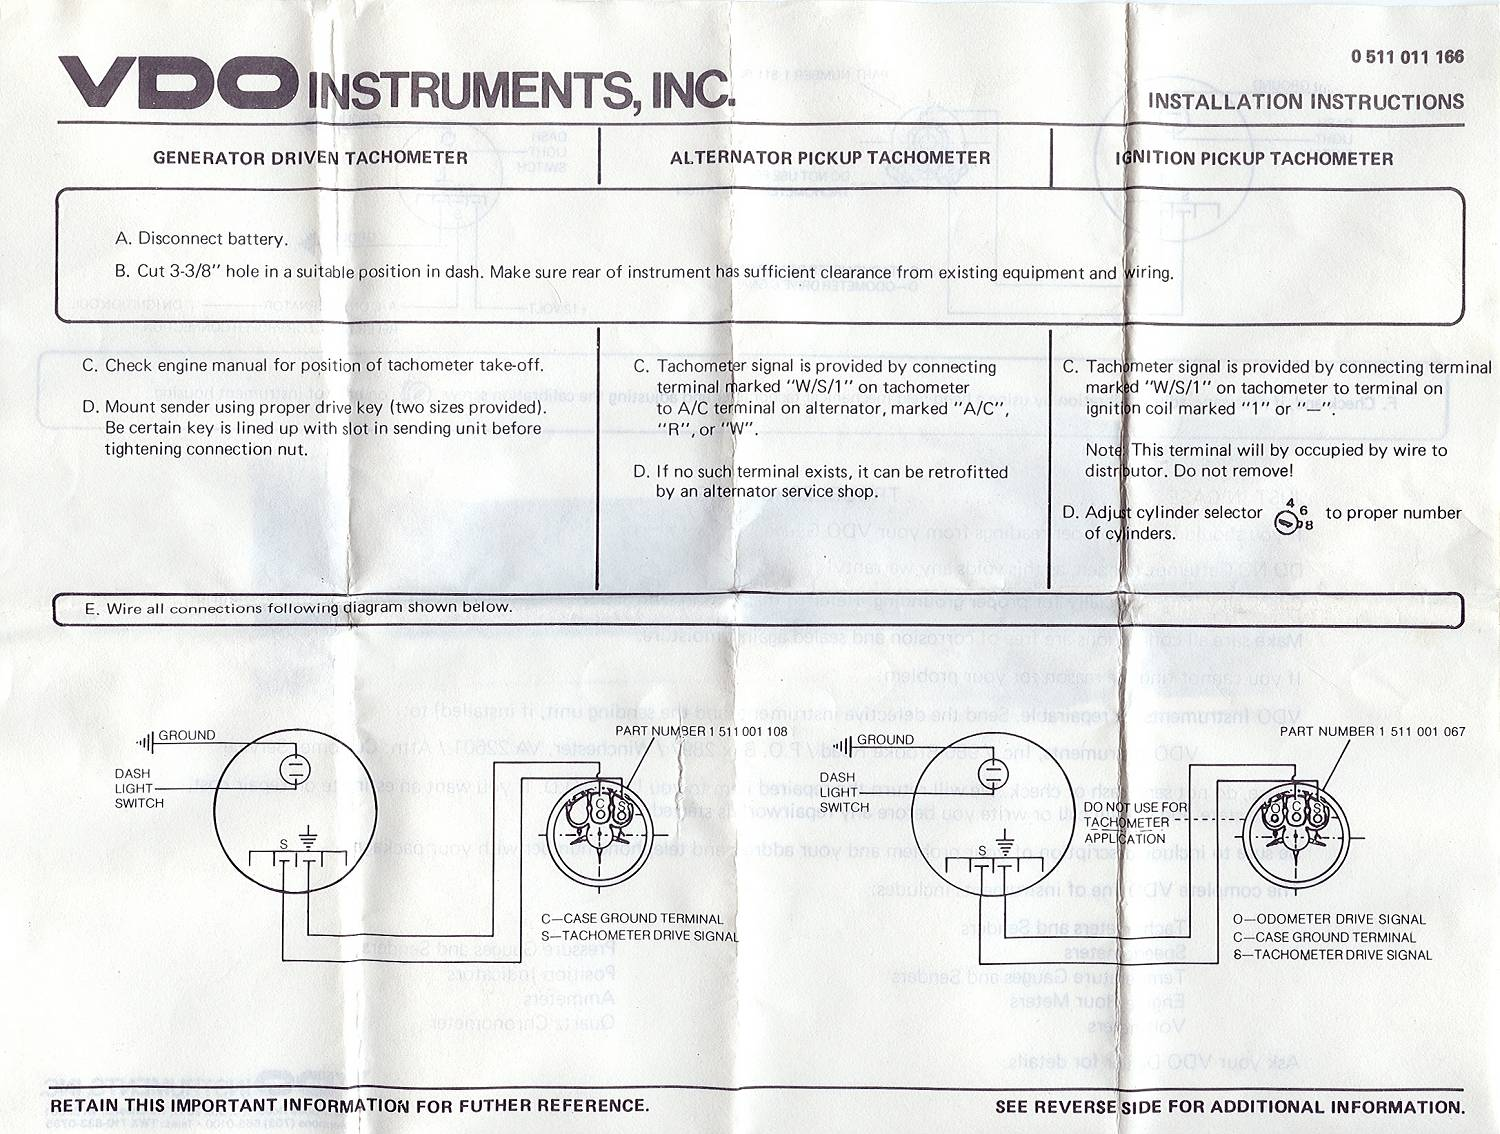 vdo gauge wiring diagram schematic oz 7353  vdo gauges wiring diagrams vdo tachometer wiring diagram  oz 7353  vdo gauges wiring diagrams vdo